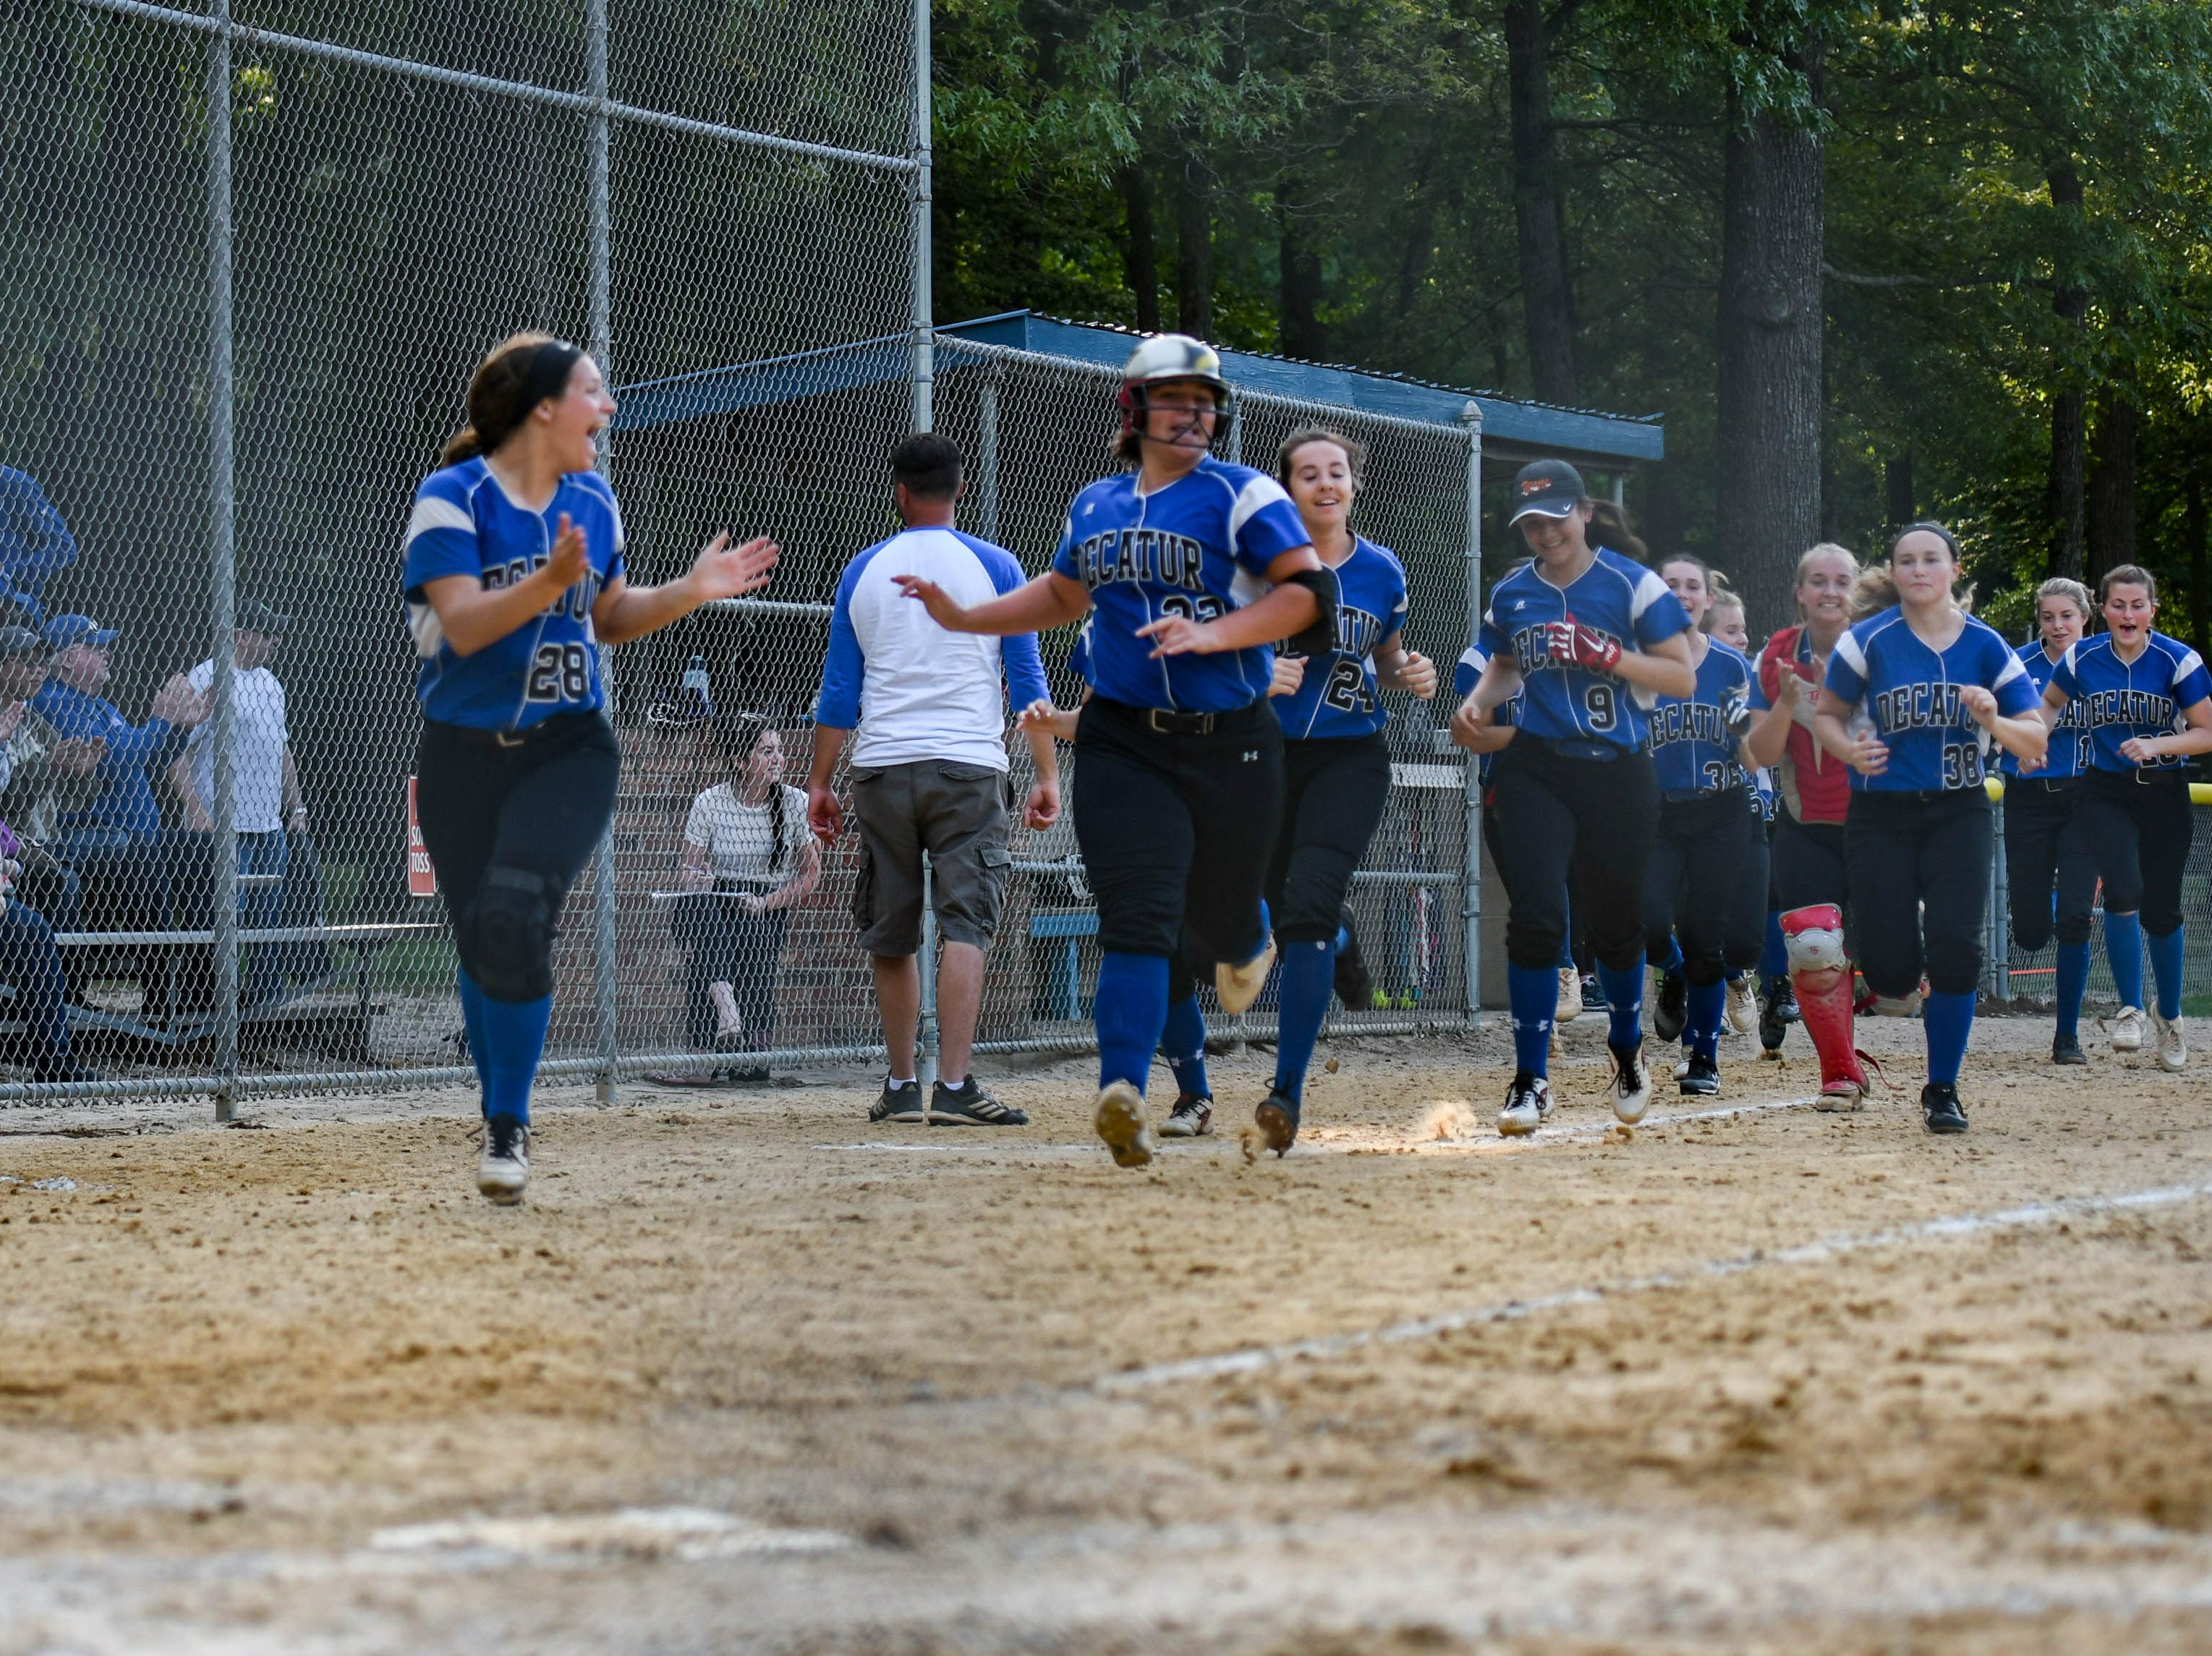 The Stephen Decatur team runs onto the field after Brooklyn Pugner hits a home run in the in the Bayside Softball Championship game against Colonel Richardson on Wednesday, May 8, 2019.